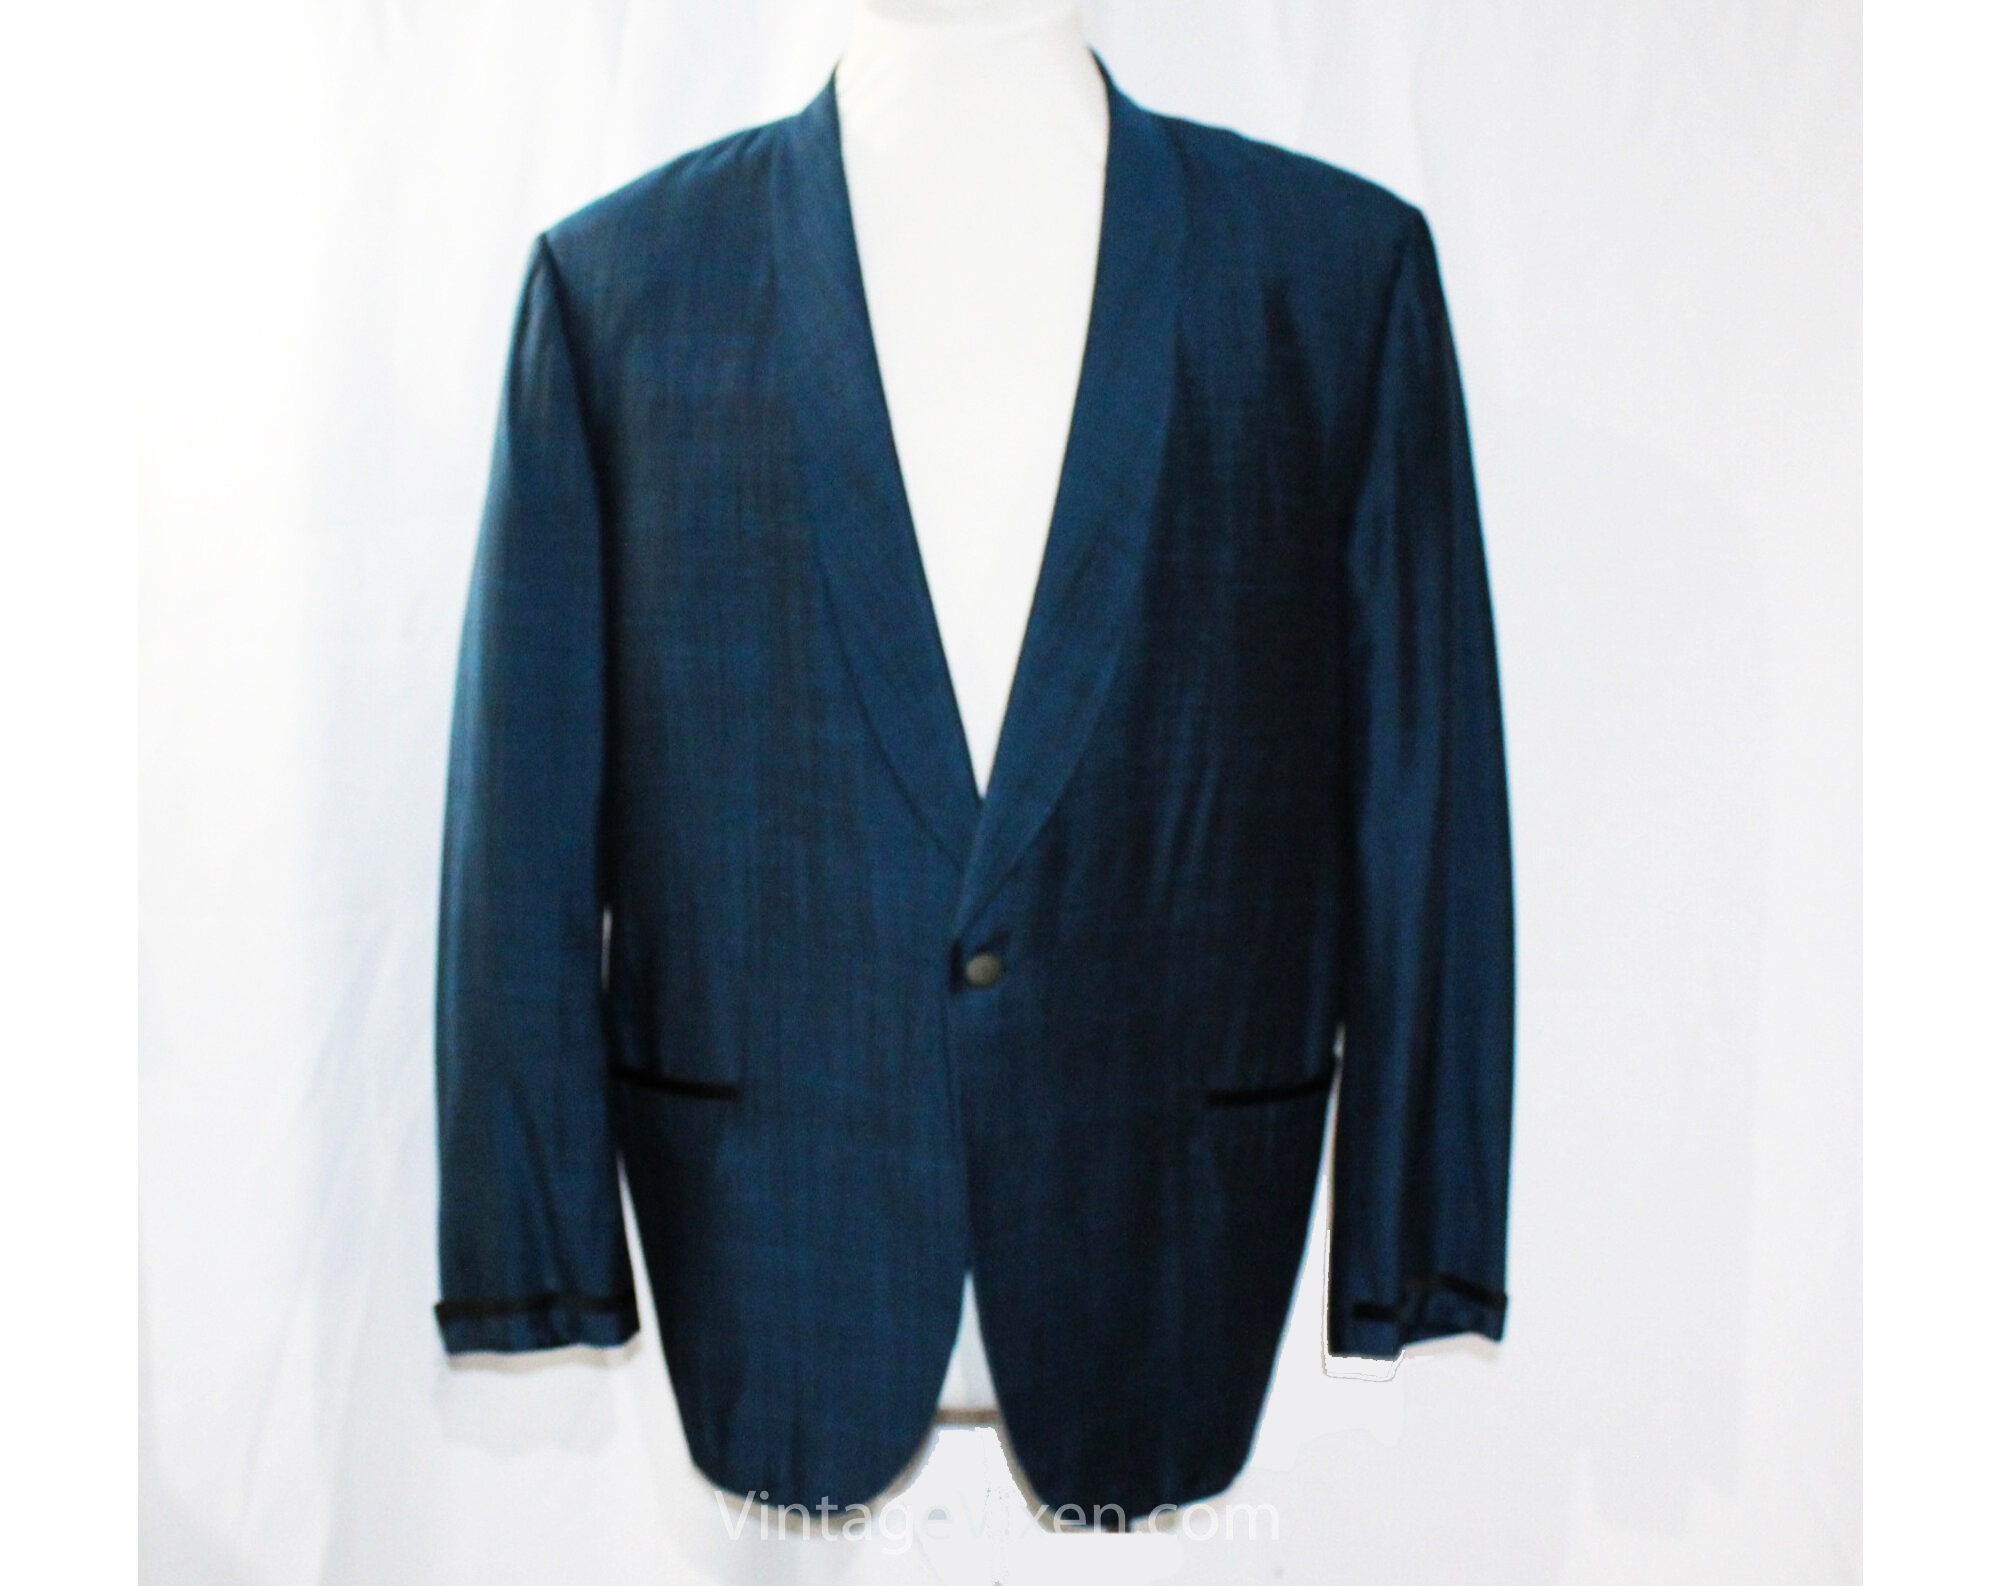 1950s Mens Suits & Sport Coats | 50s Suits & Blazers Mens Large Sharkskin Jacket - Sharp 1950S Teal Sapphire Blue Shark Skin Suit Handsome Mid Century Rat Pack Sport Coat Chest 46 $40.45 AT vintagedancer.com